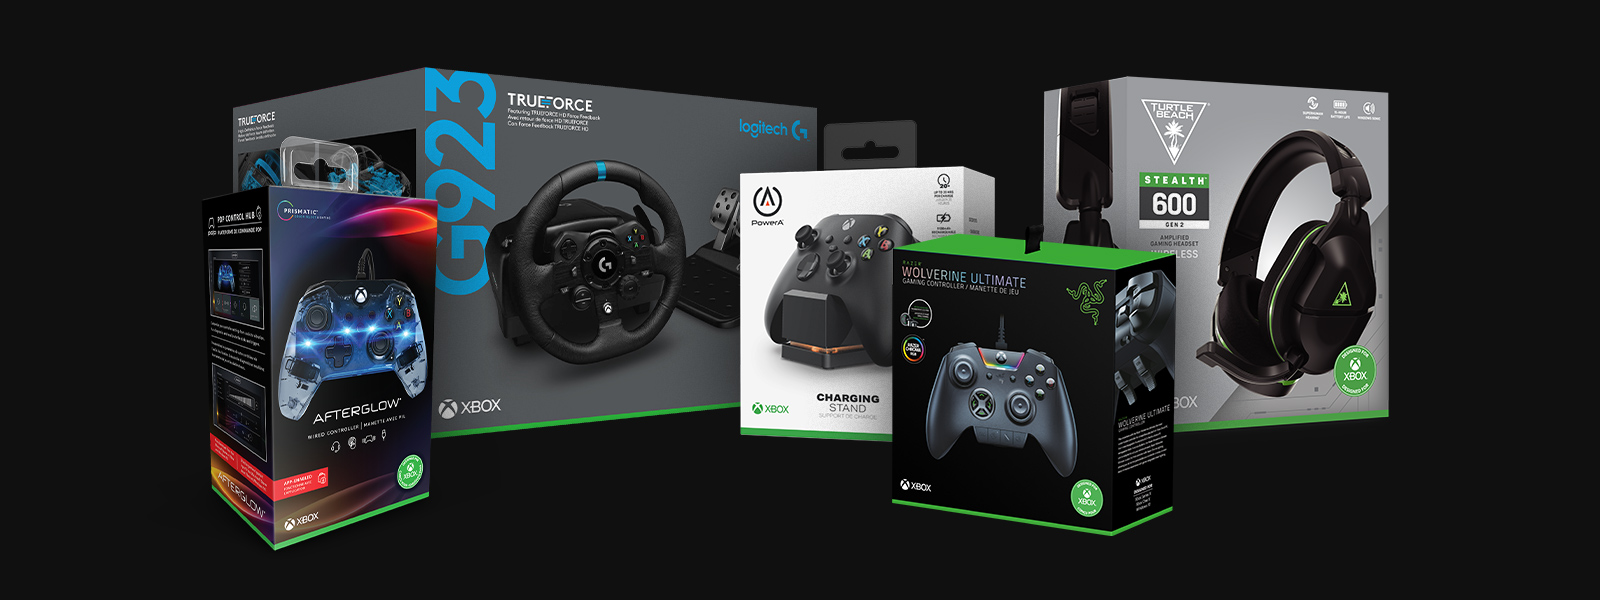 Collection of boxed Xbox accessories including Afterglow controller, Logitech G923 wheel, PowerA charging stand, Razer Wolverine Ultimate controller, and the Turtle Beach Stealth 700 headset.